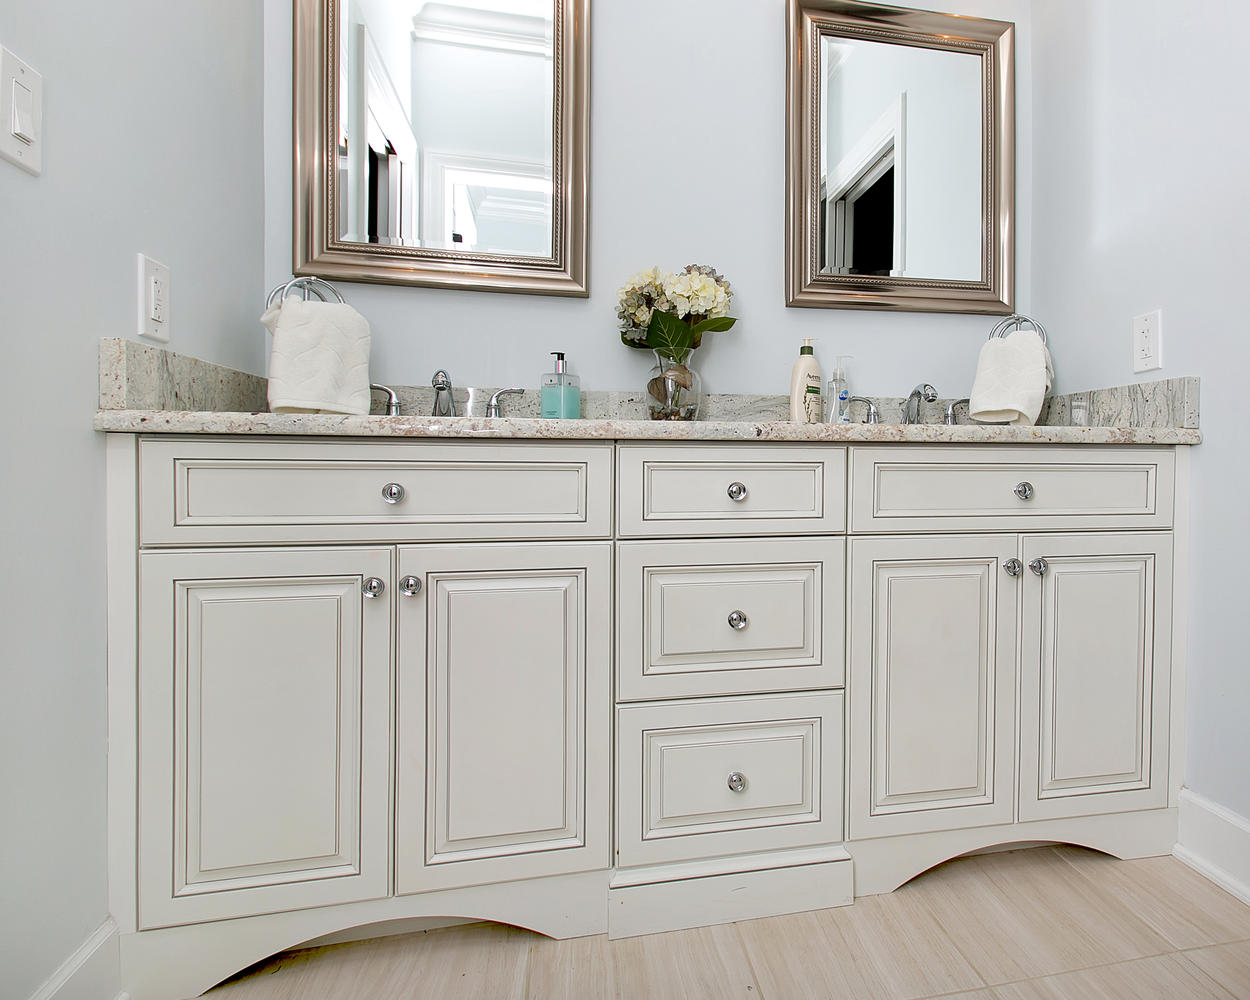 custom vanity bathroom cabinetry design line kitchens